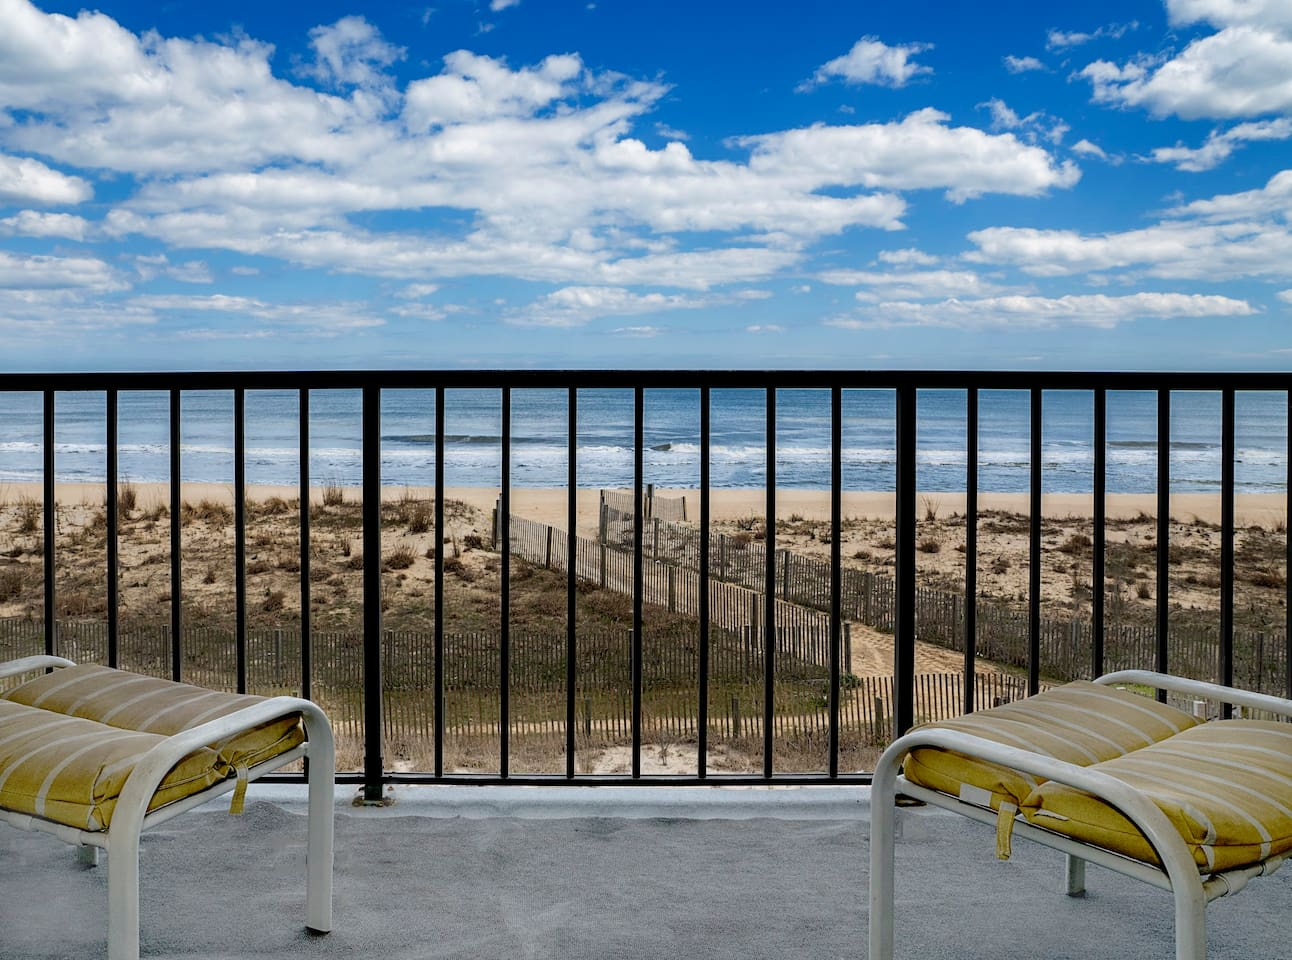 The view of the Atlantic Ocean, dunes, and low-population beach from the unit's private balcony.